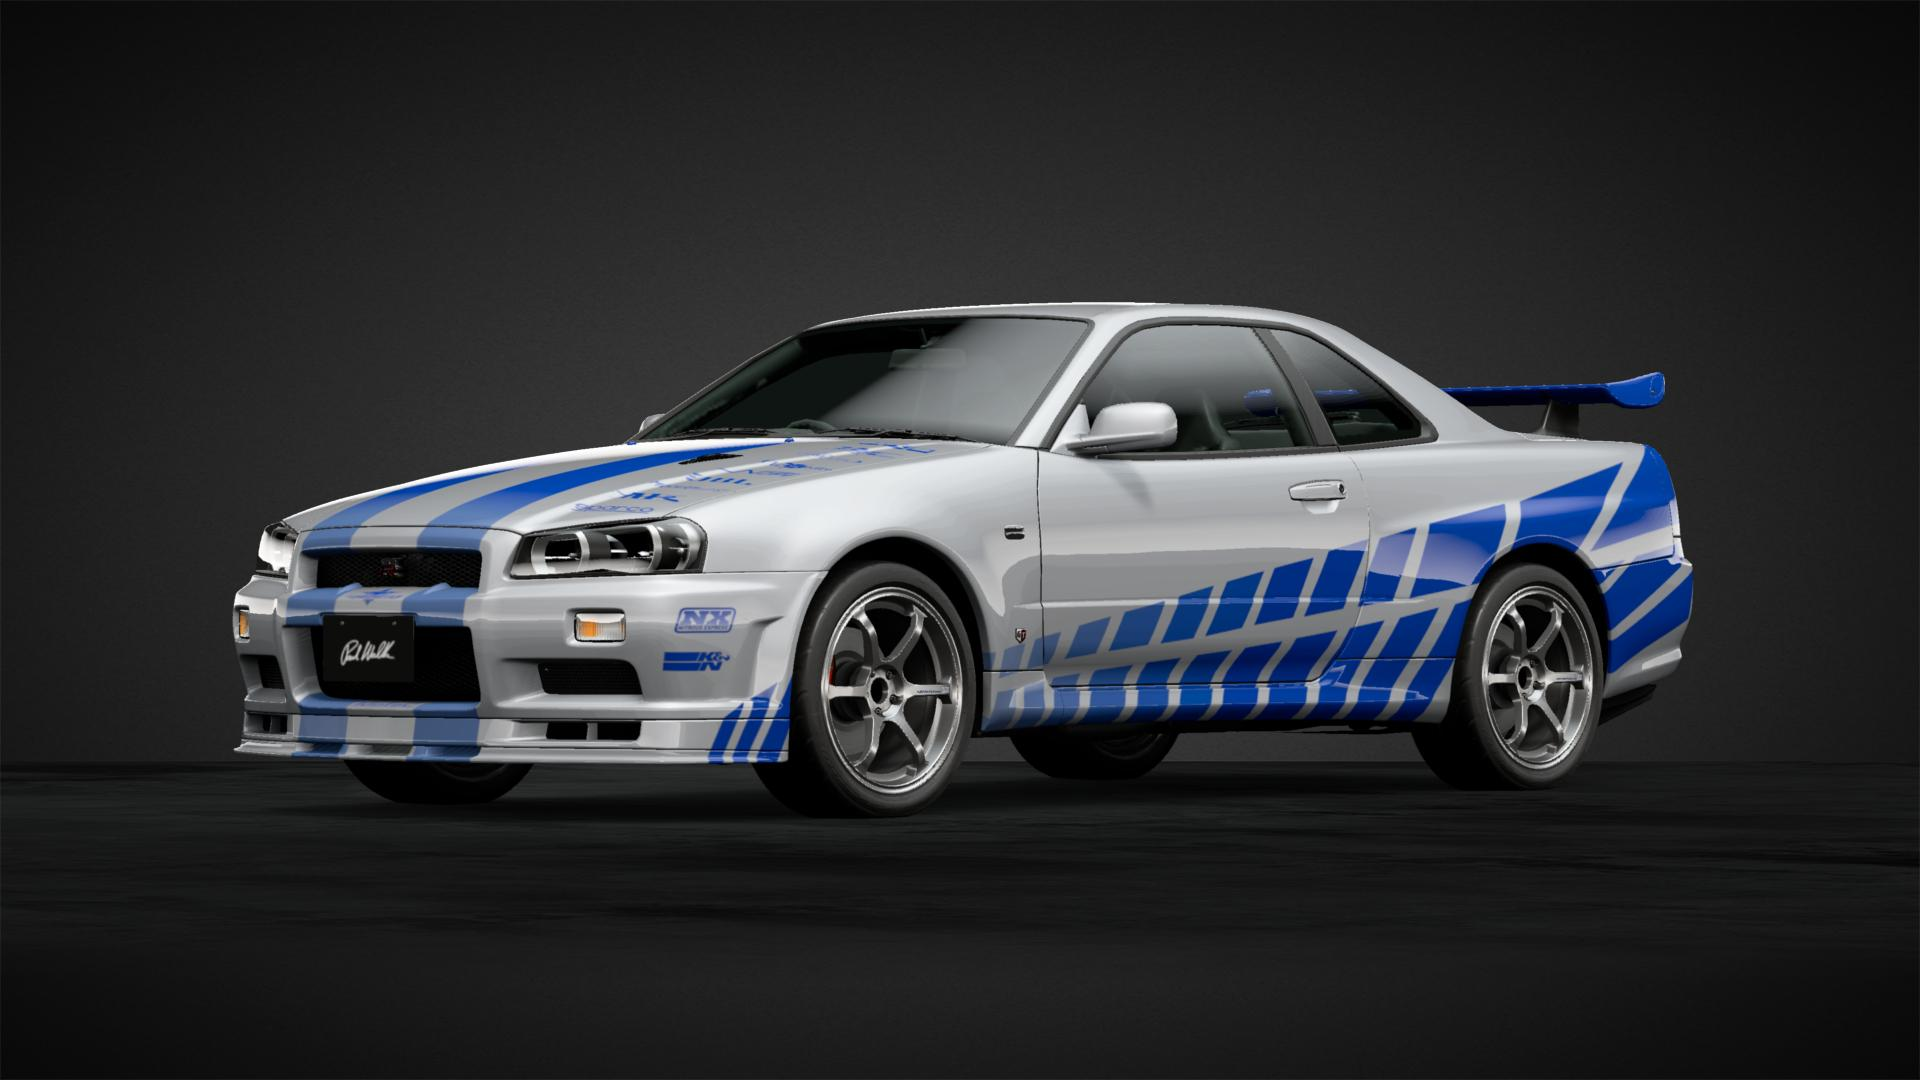 2 Fast 2 Furious Skyline Car Livery By Luke C 93 Community Gran Turismo Sport